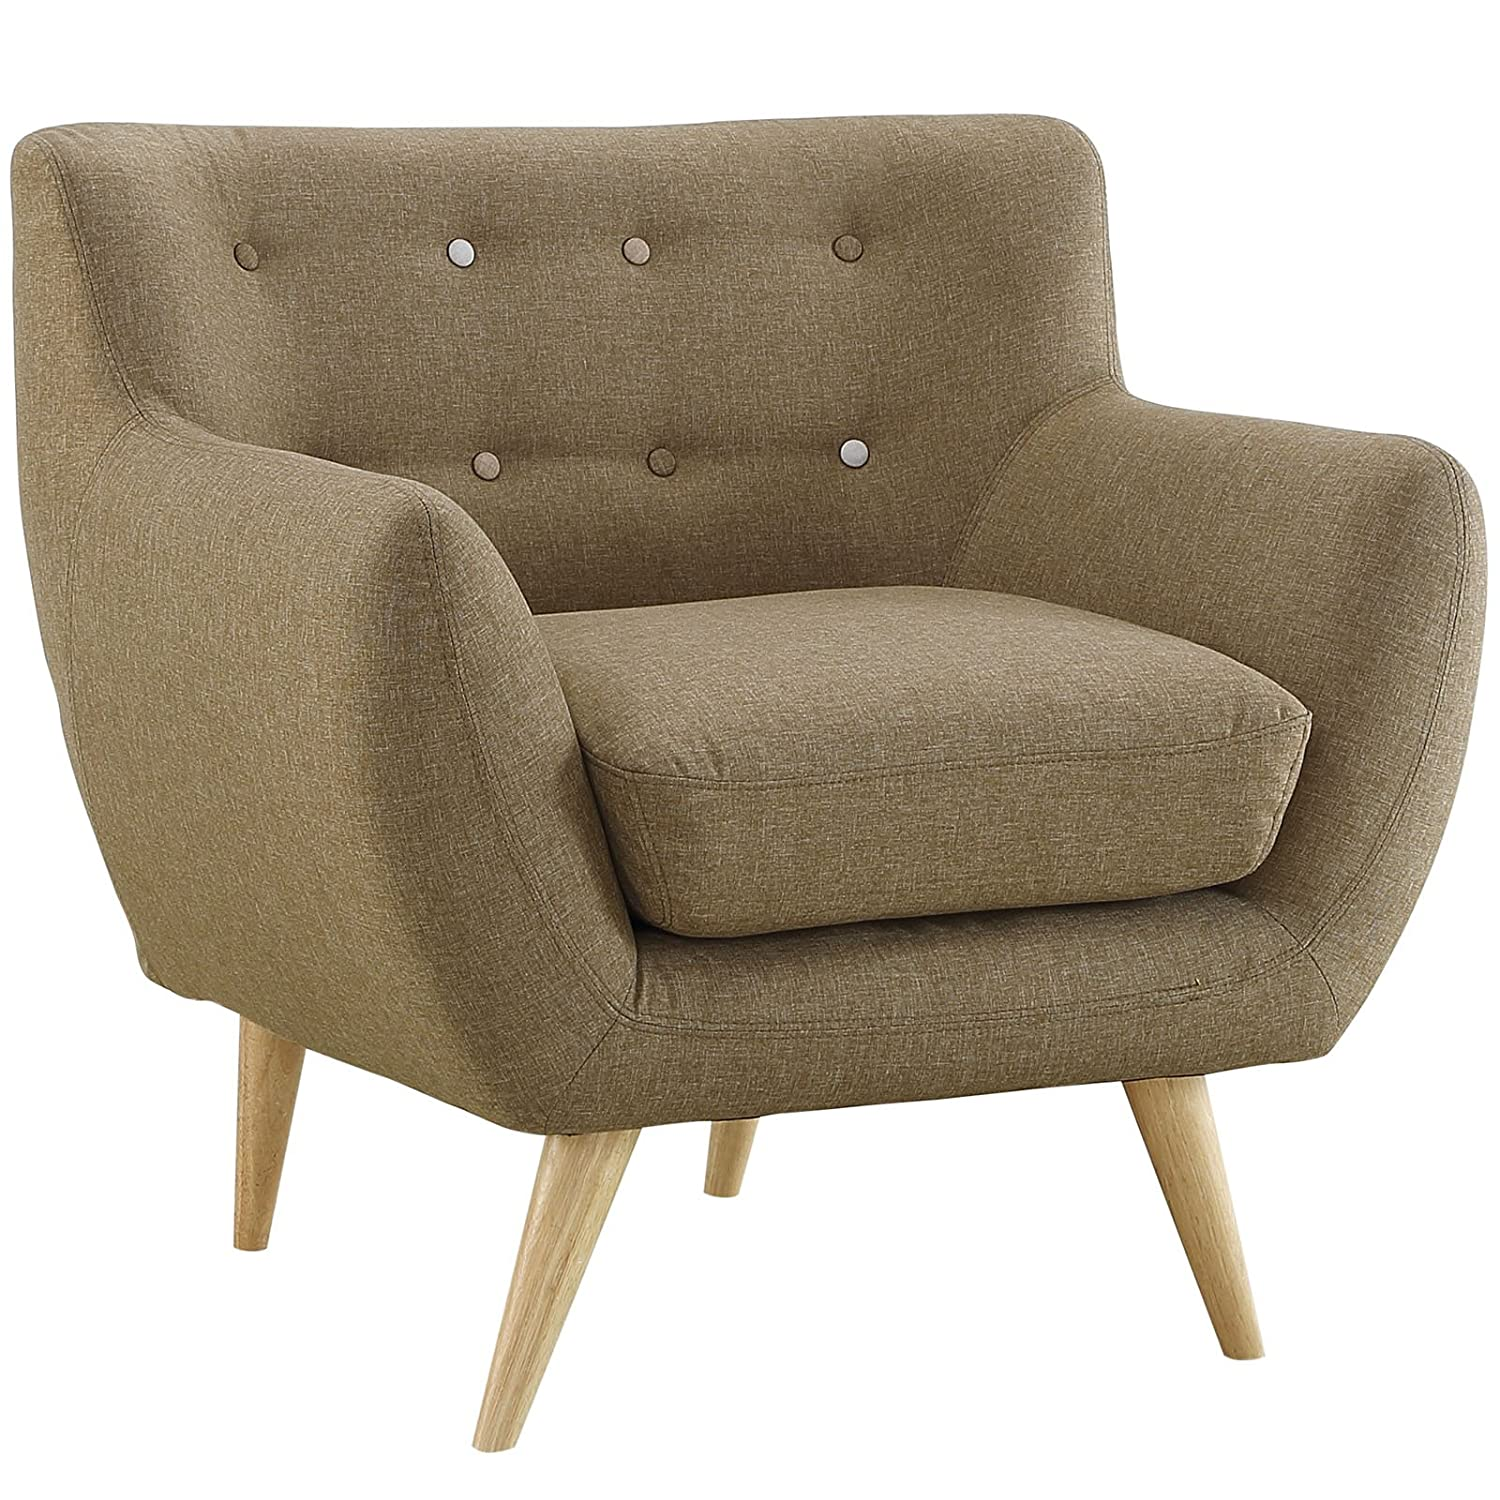 Armchair Upholstery Amazoncom Modway Remark Mid Century Modern Loveseat With